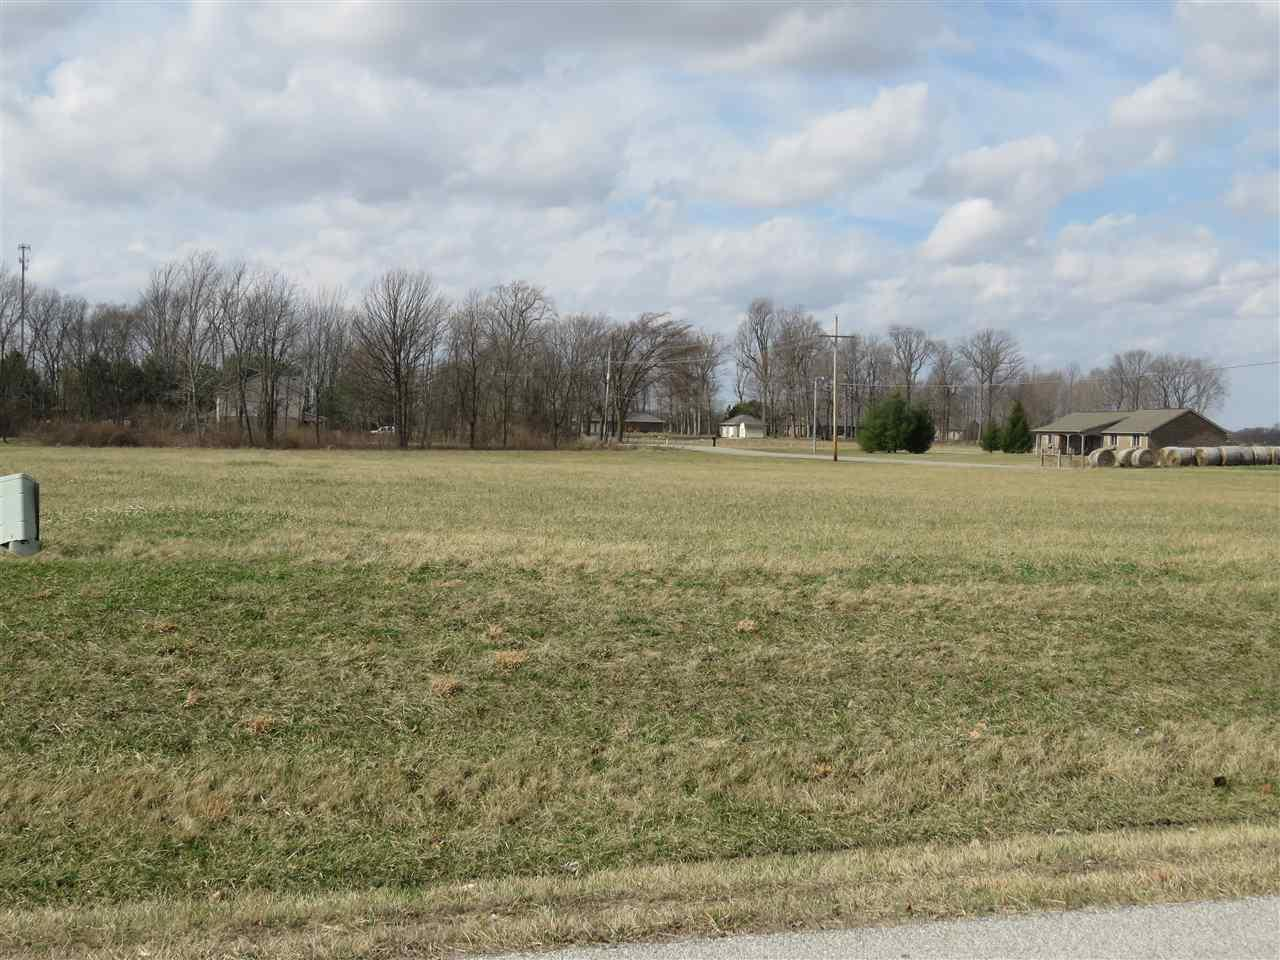 000 County Rd 750 S - Photo 1